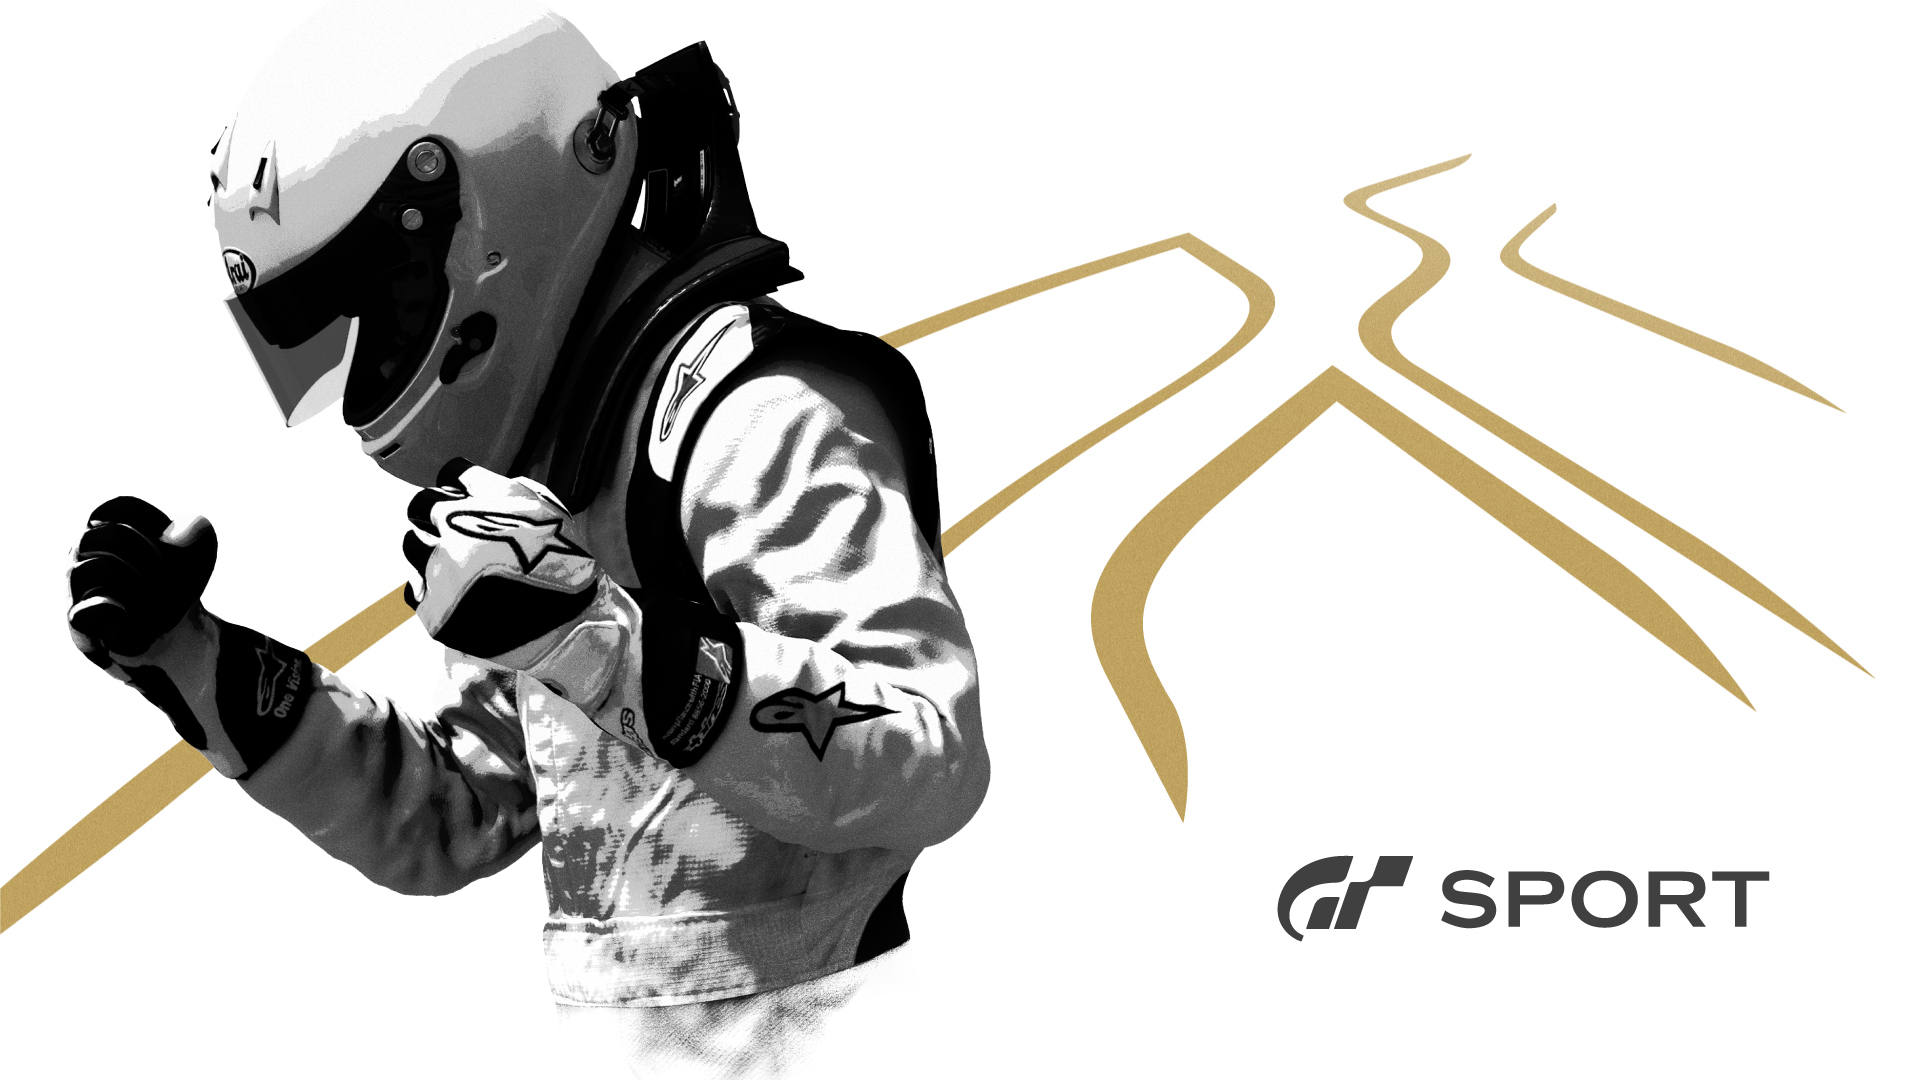 Gran Turismo Sport hits the track this November: everything you need to know